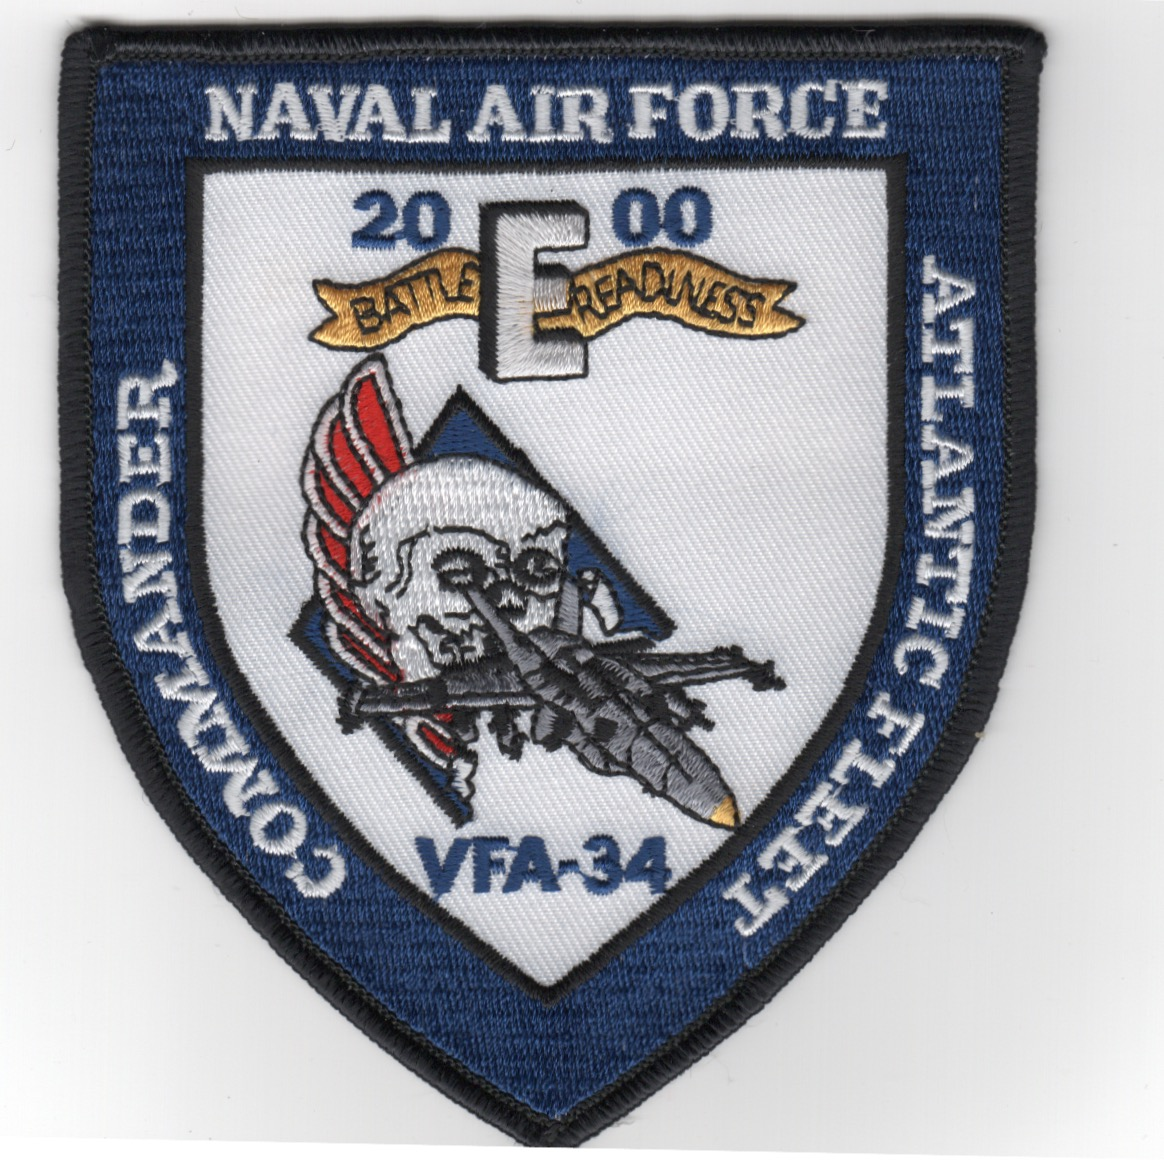 393) VFA-34 2000 Battle 'E' Shield Patch